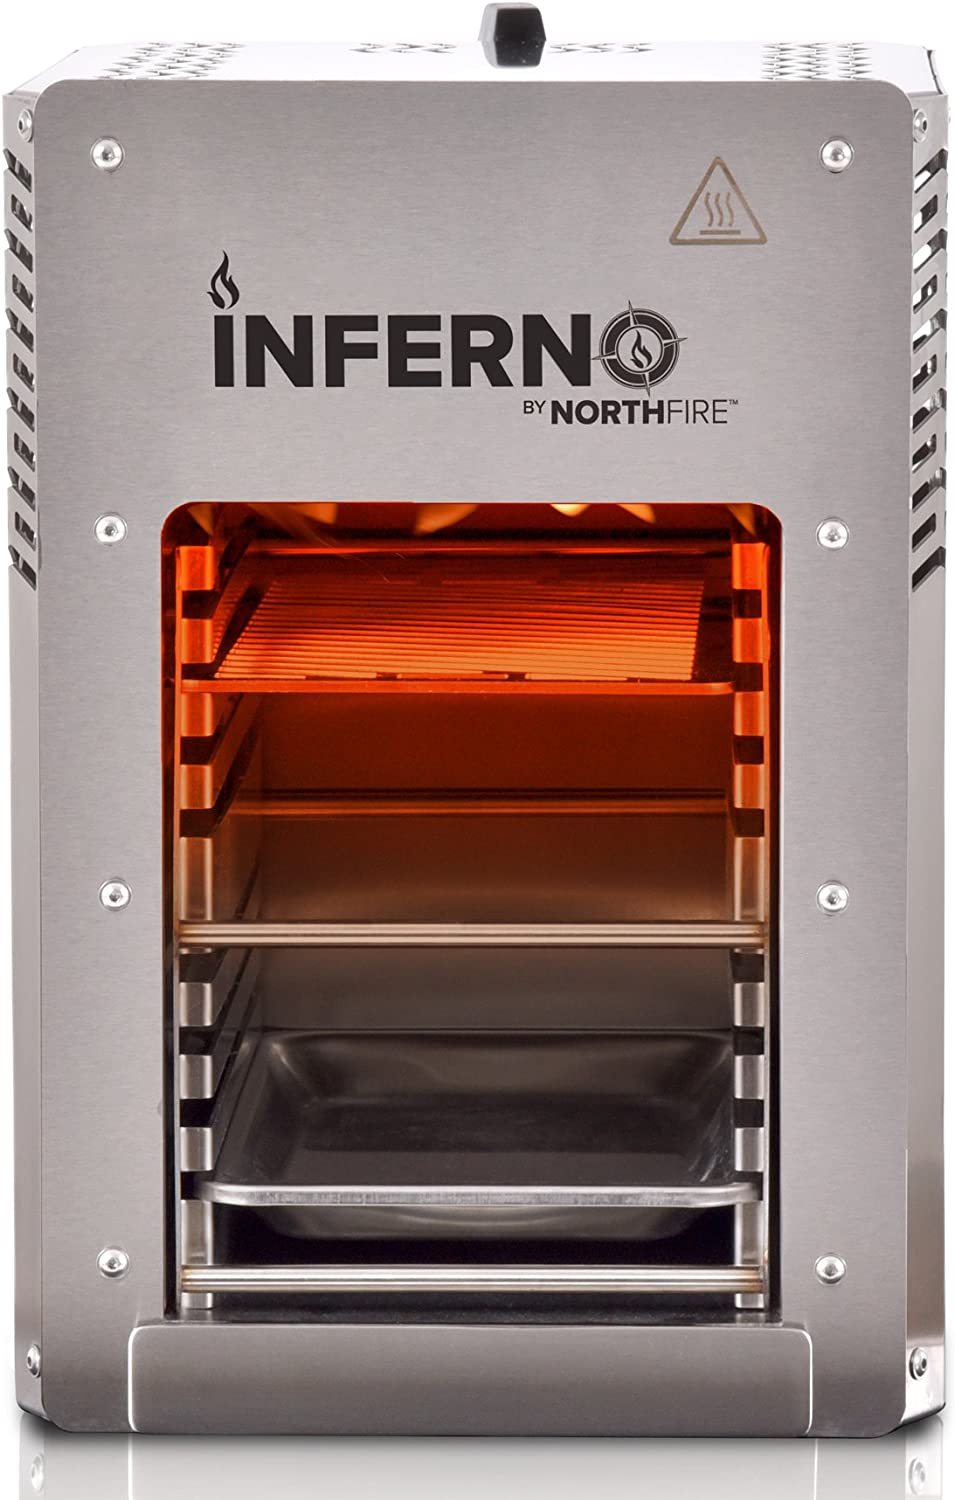 Best infrared grill-Best outdoor: Northfire Inferno single propane infrared grill